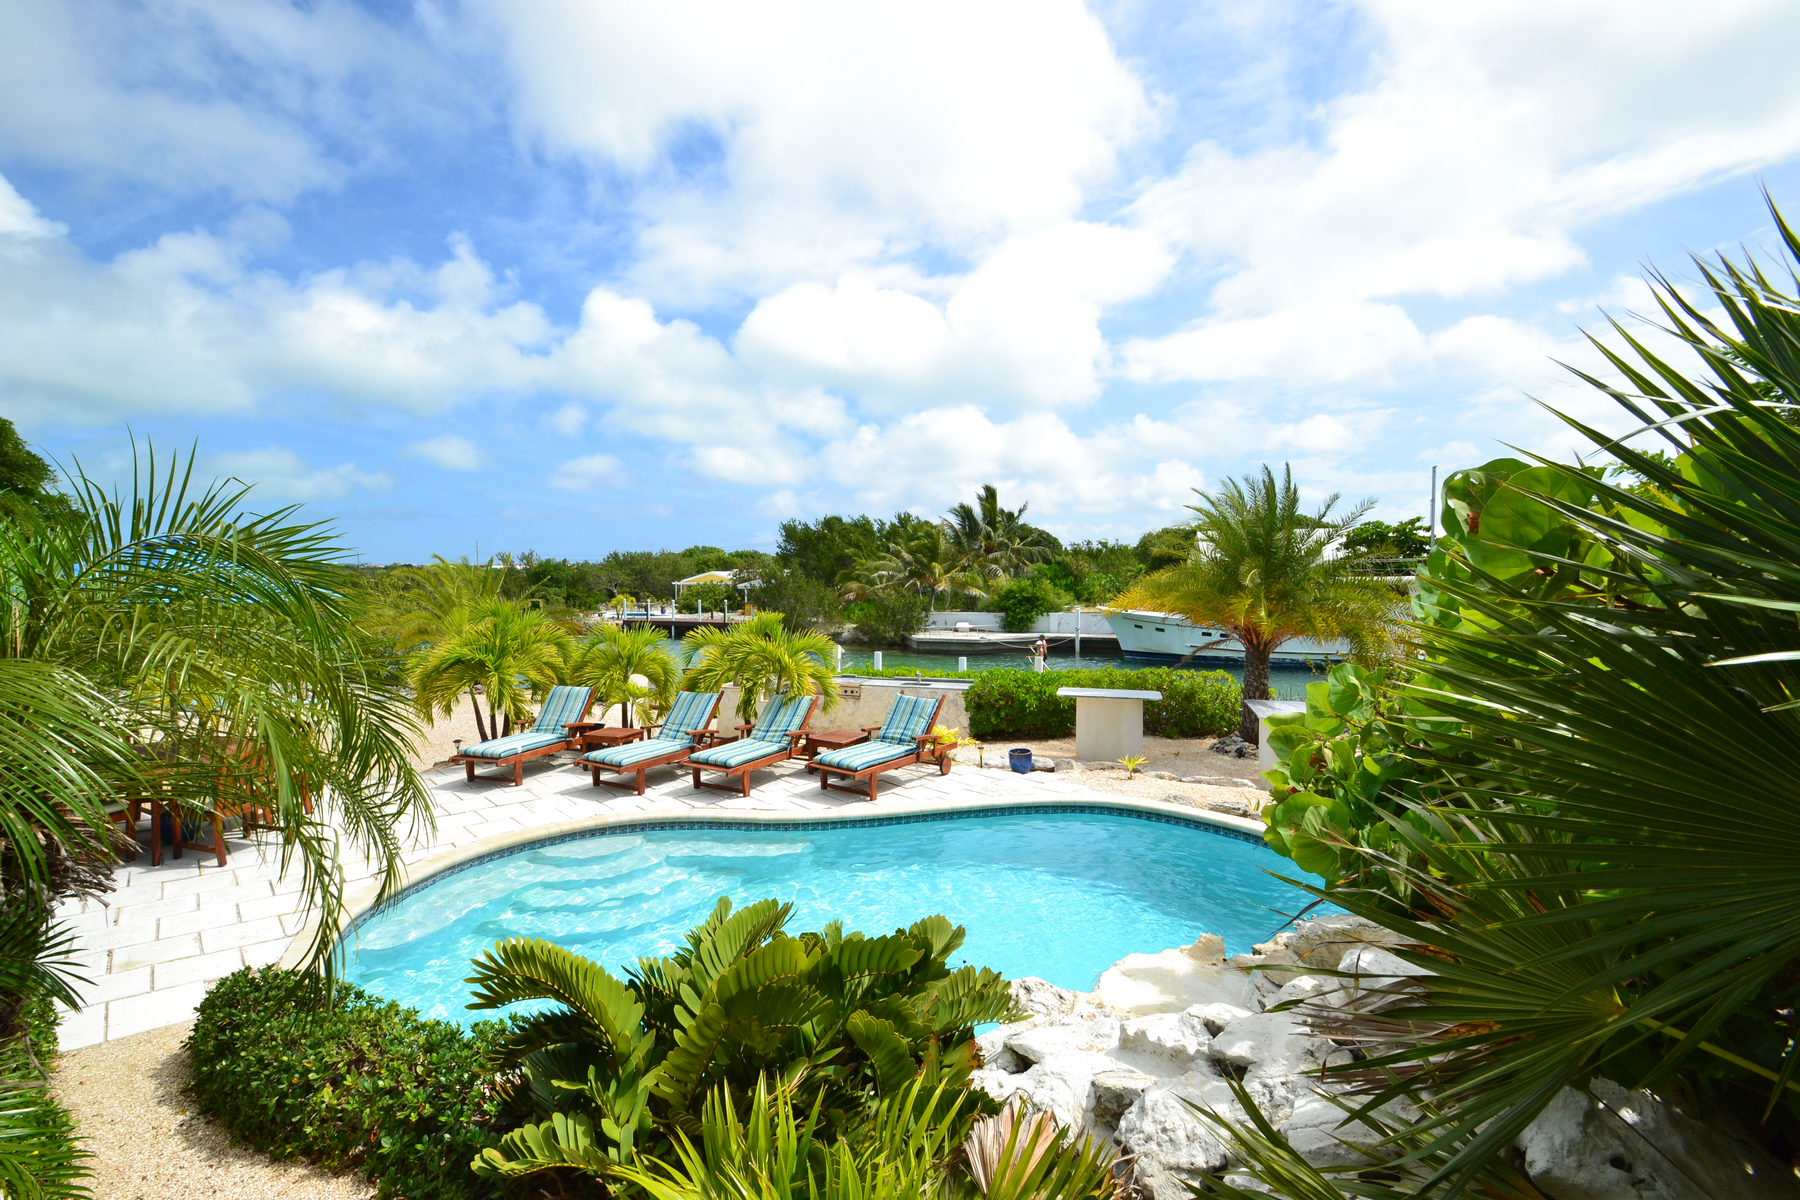 Single Family Home for Sale at Discovery Bay Canalfront Discovery Bay, Providenciales TC Turks And Caicos Islands